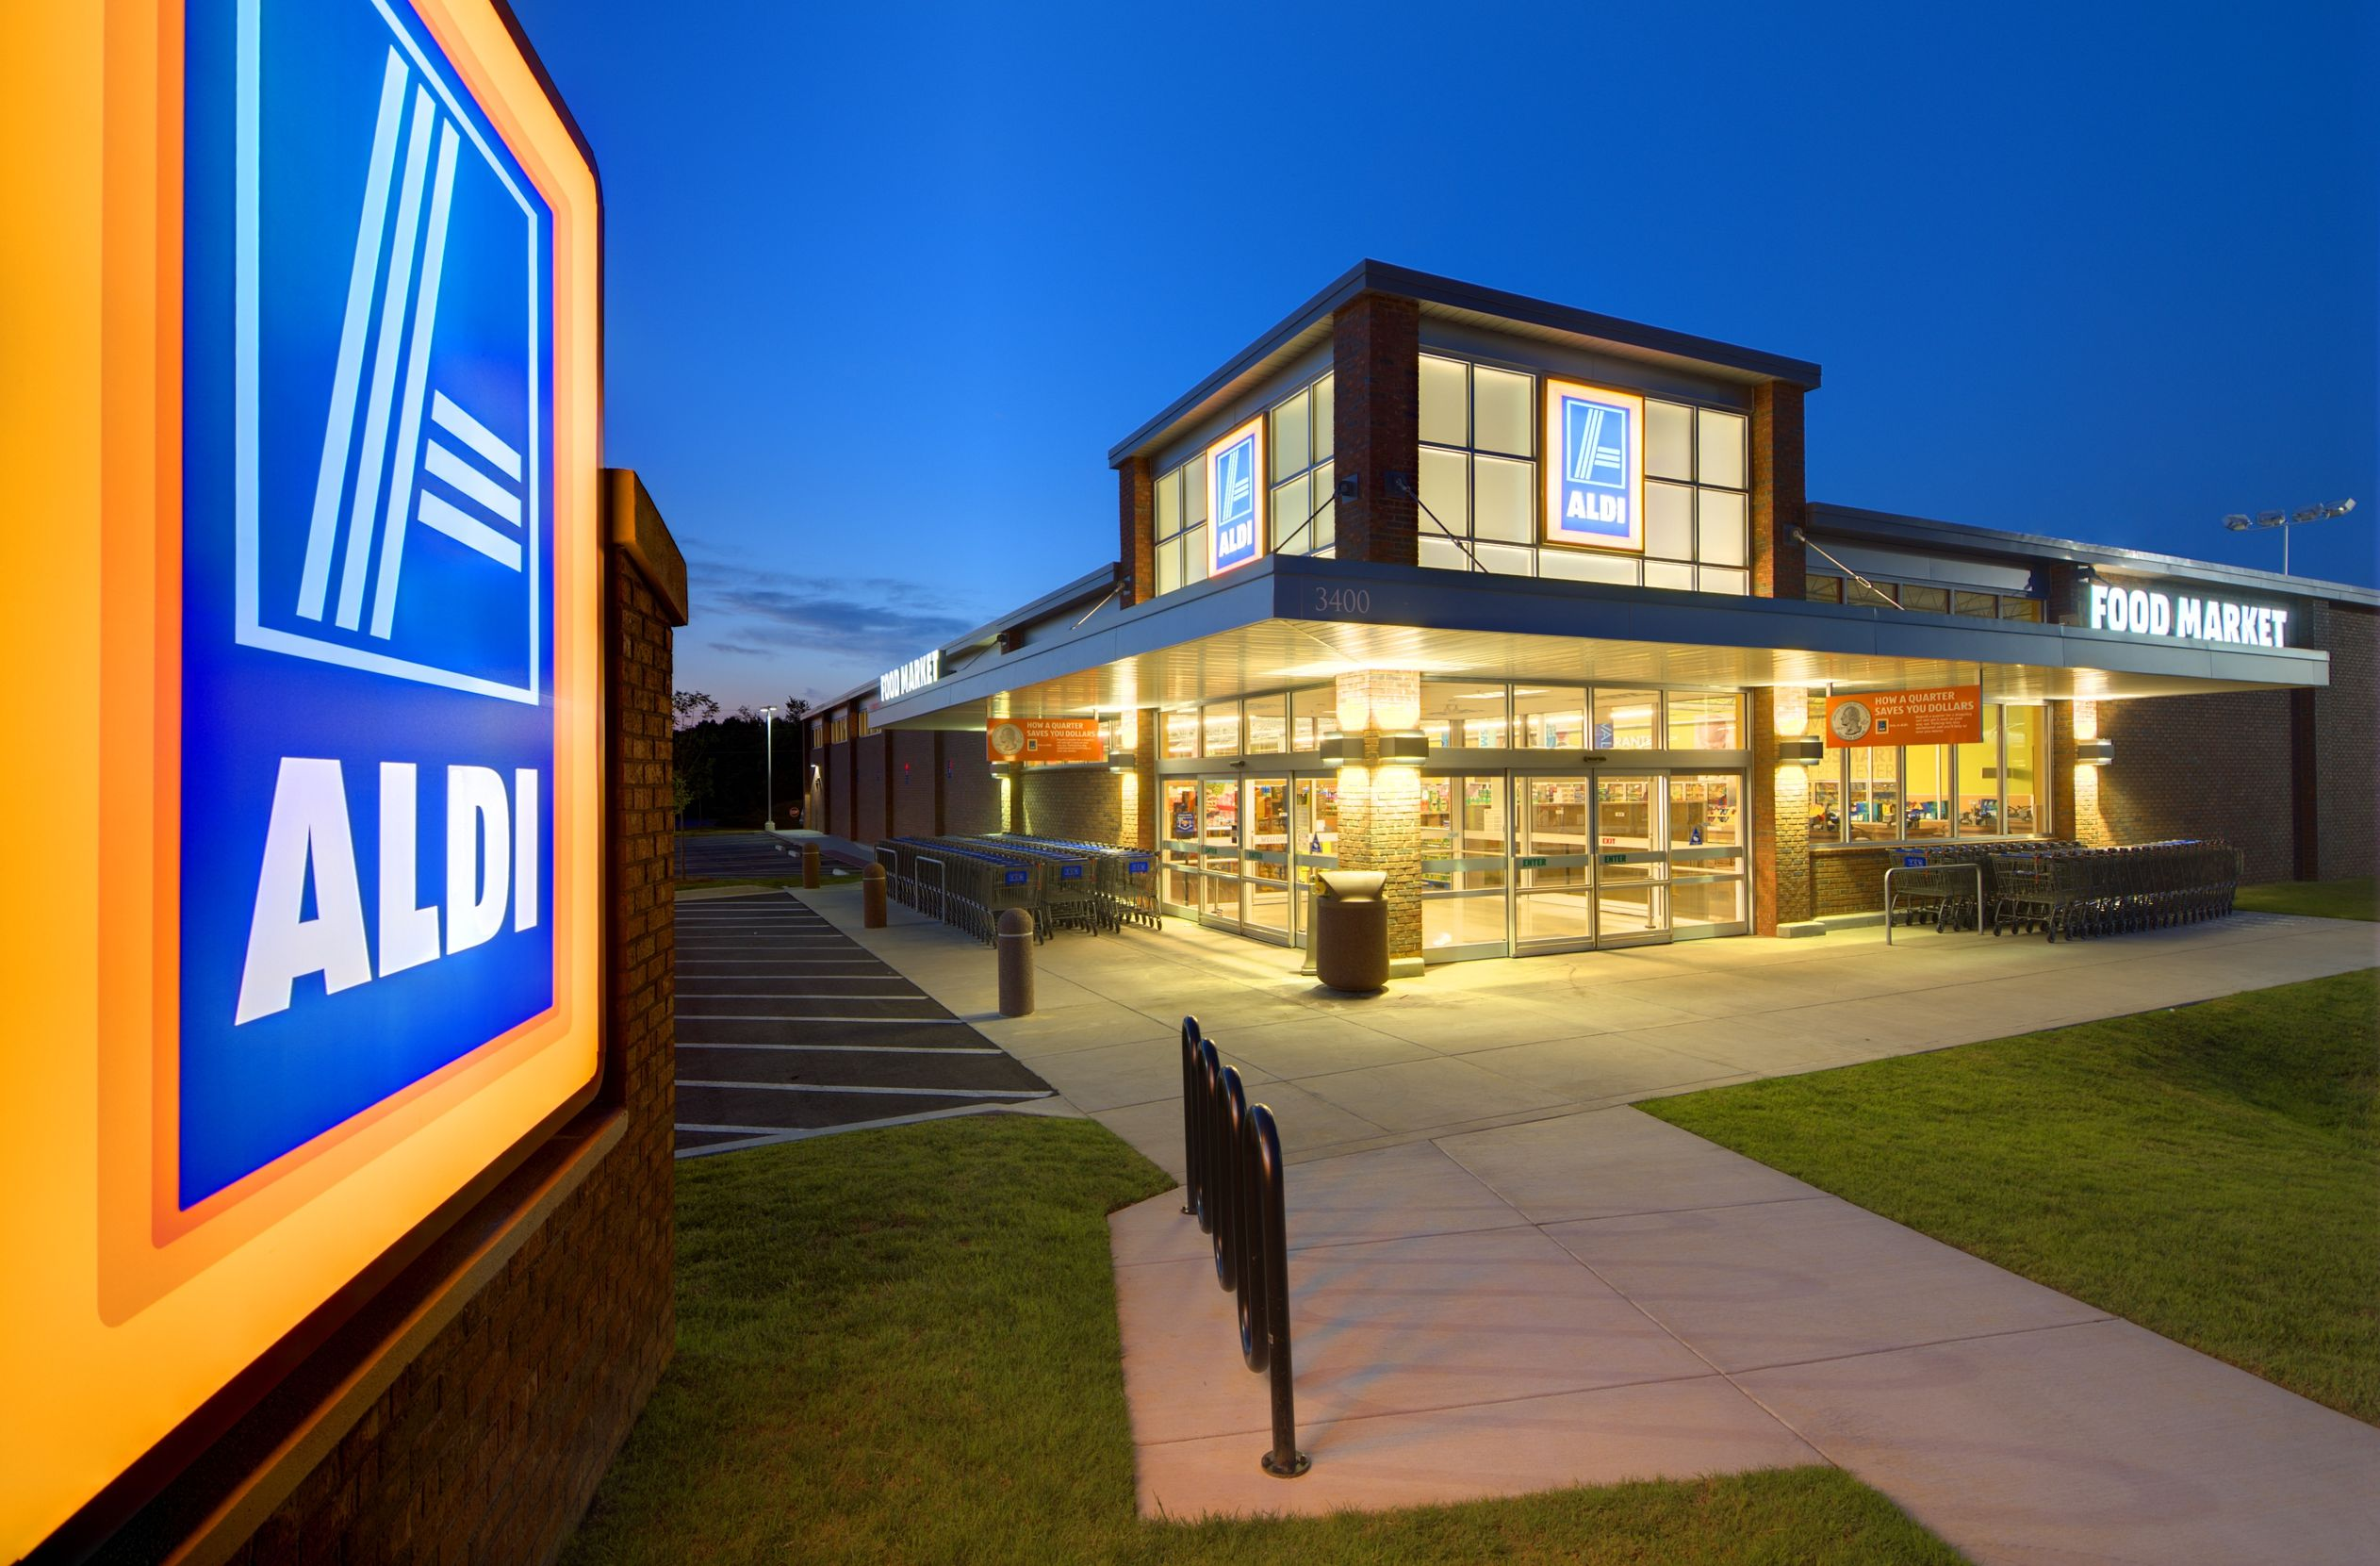 Shop at stores like Aldi to save on groceries.